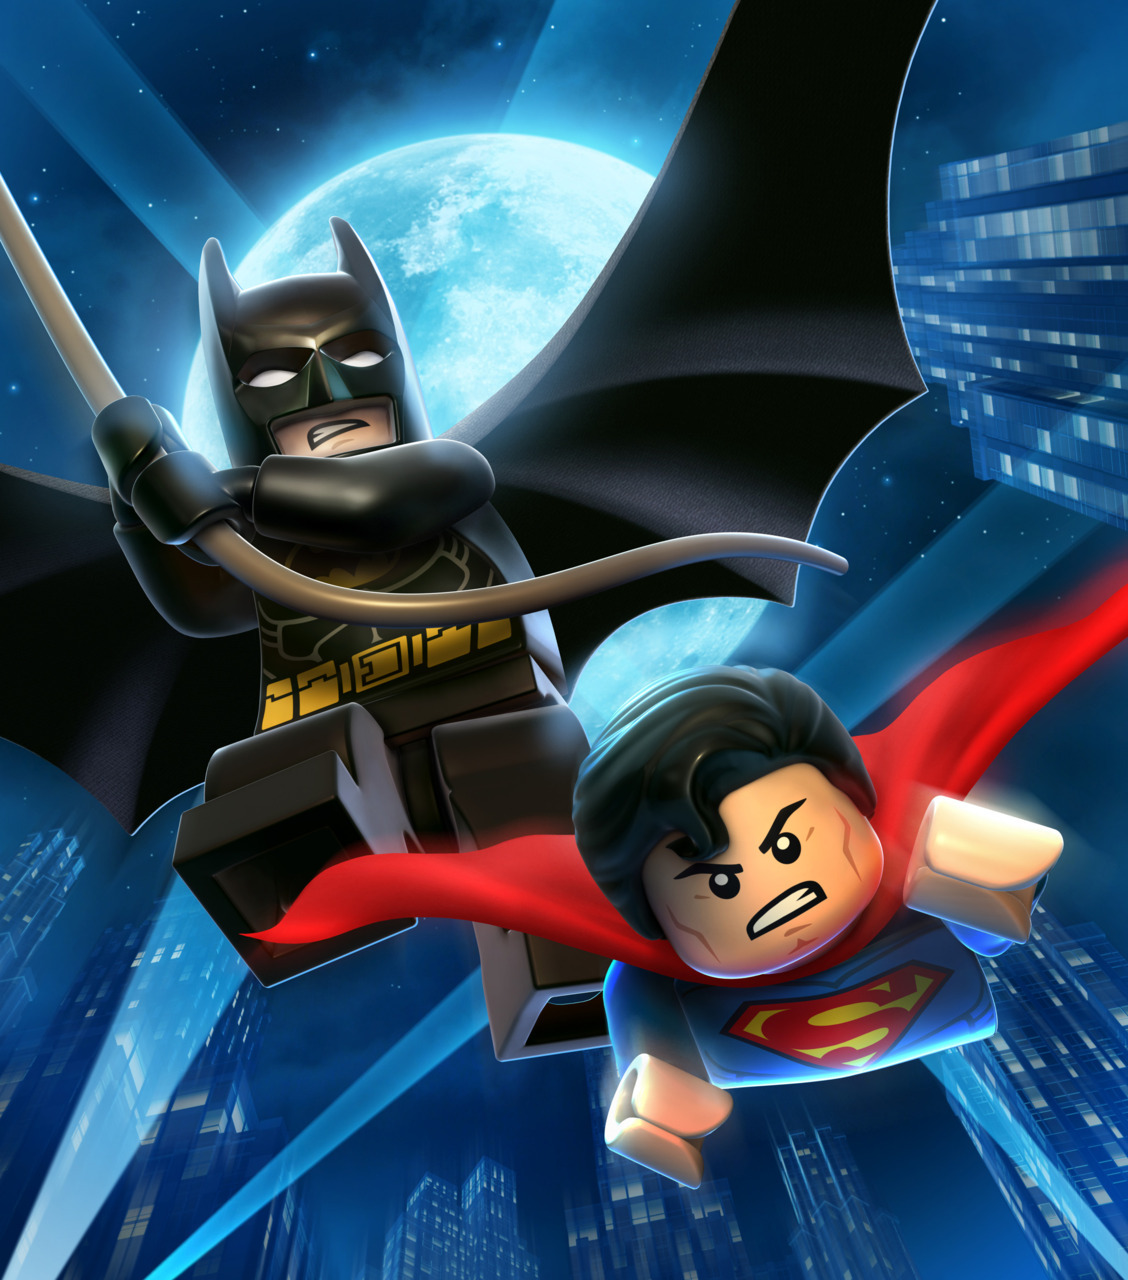 itlego:  Press Release: Lego Batman 2: DC Super Heroes Announced Batman is back to save Gotham City and the action will only build from here! Warner Bros. Interactive Entertainment, TT Games and The LEGO Group are teaming up once again to announce that LEGO Batman 2: DC Super Heroes will be available beginning Summer 2012 for the Xbox 360 video game and entertainment system from Microsoft, PlayStation 3 computer entertainment system, the Wii™ system, and Windows PC, as well as the Nintendo DS™ hand-held system, Nintendo 3DS™ hand-held system, and PlayStation Vita handheld entertainment system.   In LEGO Batman™ 2: DC Super Heroes, the Dynamic Duo of Batman and Robin join other famous super heroes from the DC Universe including Superman, Wonder Woman and Green Lantern to save Gotham City from destruction at the hands of the notorious villains Lex Luthor and the Joker. Batman fans of all ages will enjoy a new and original story filled with classic LEGO videogame action and humor as players fight to put the villains back behind bars.